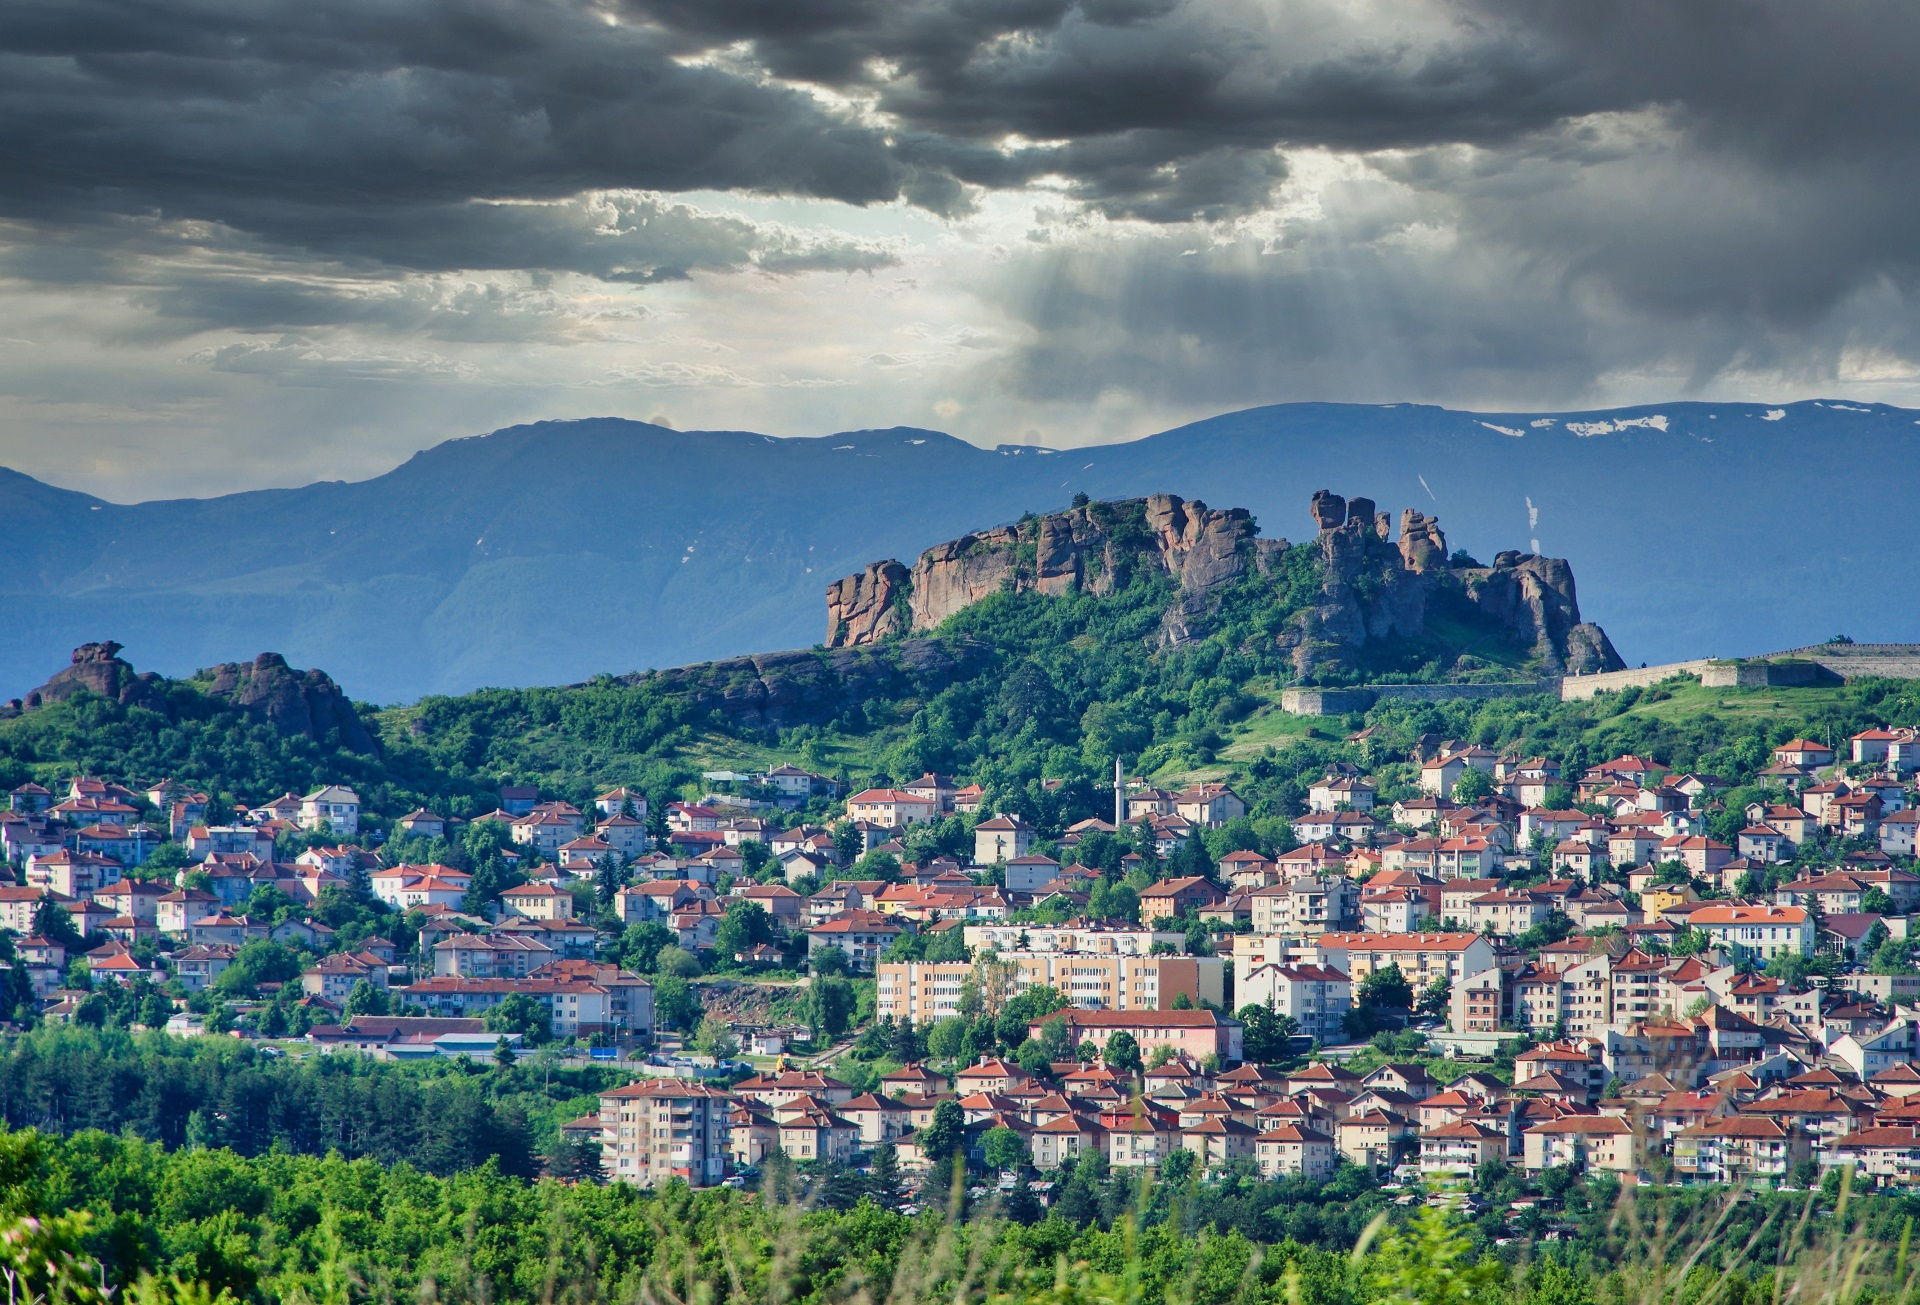 The Belogradchik rocks and fortress from a distance